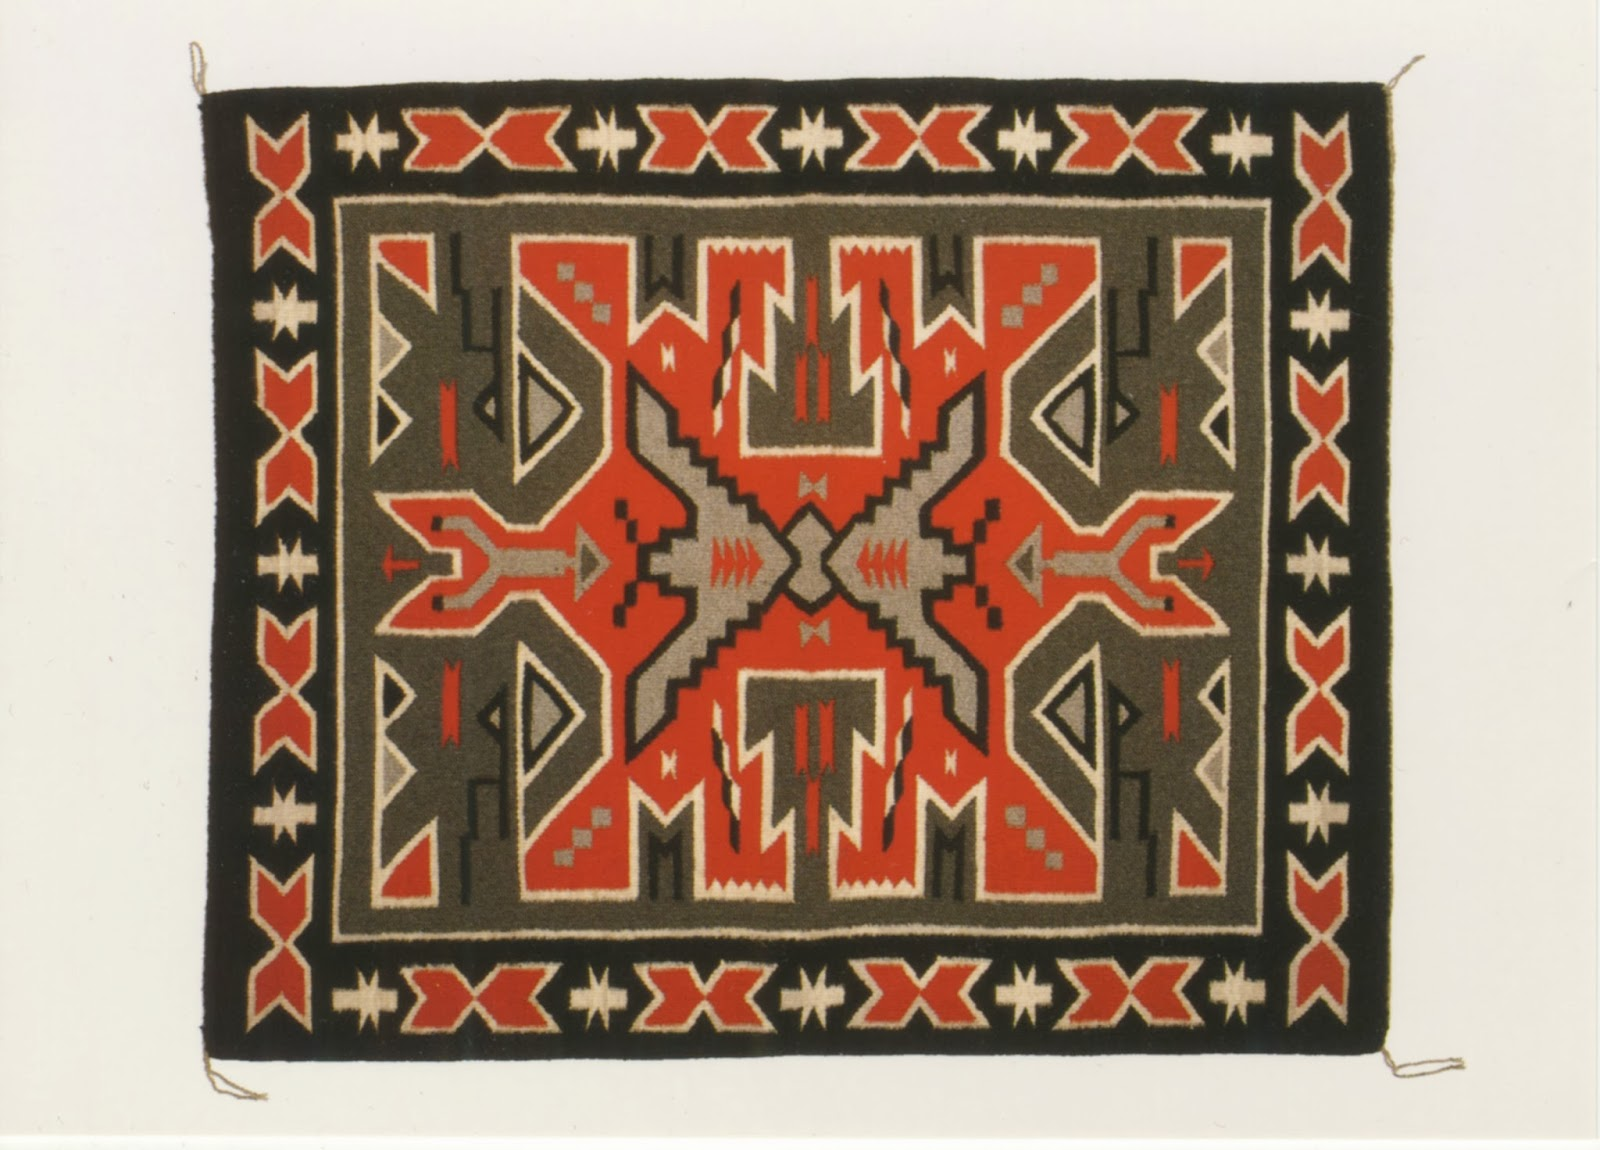 Designer Uncredited, Navajo rug from Teec Nos Pos, Apache County, Arizona. George H.H. Huey, photographer. Issued as a postcard in a set published under the title   Navajo Rugs of the Southwest  , undated (which I bought at the Denver Art Museum in 2008, I think)